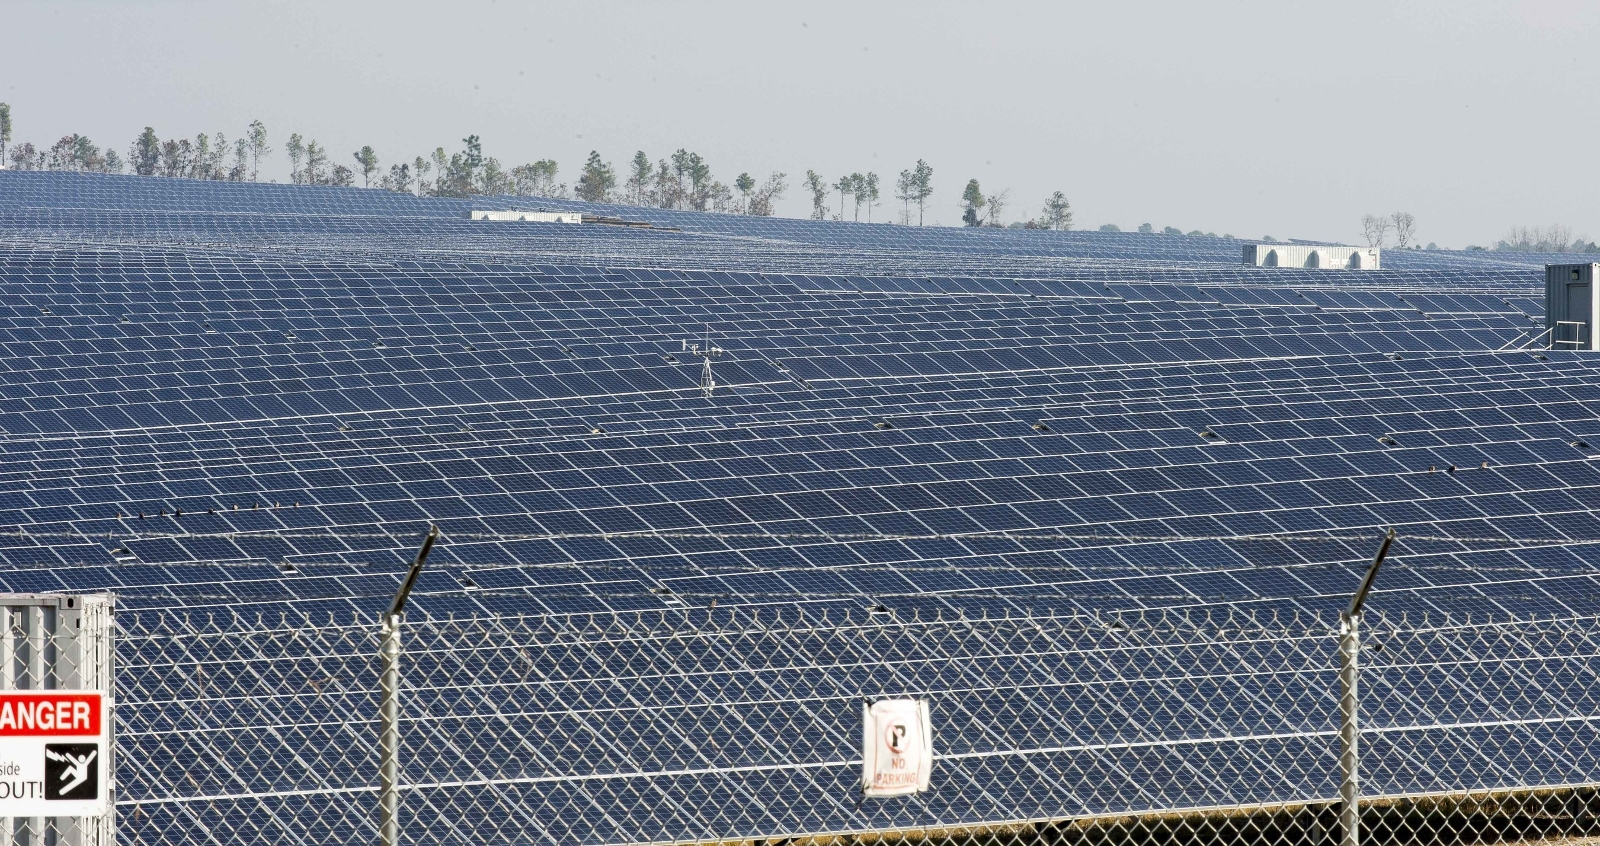 The 139MW Warner Robins facility will be the largest single solar project to date to be constructed by Georgia Power. Image: Georgia Power